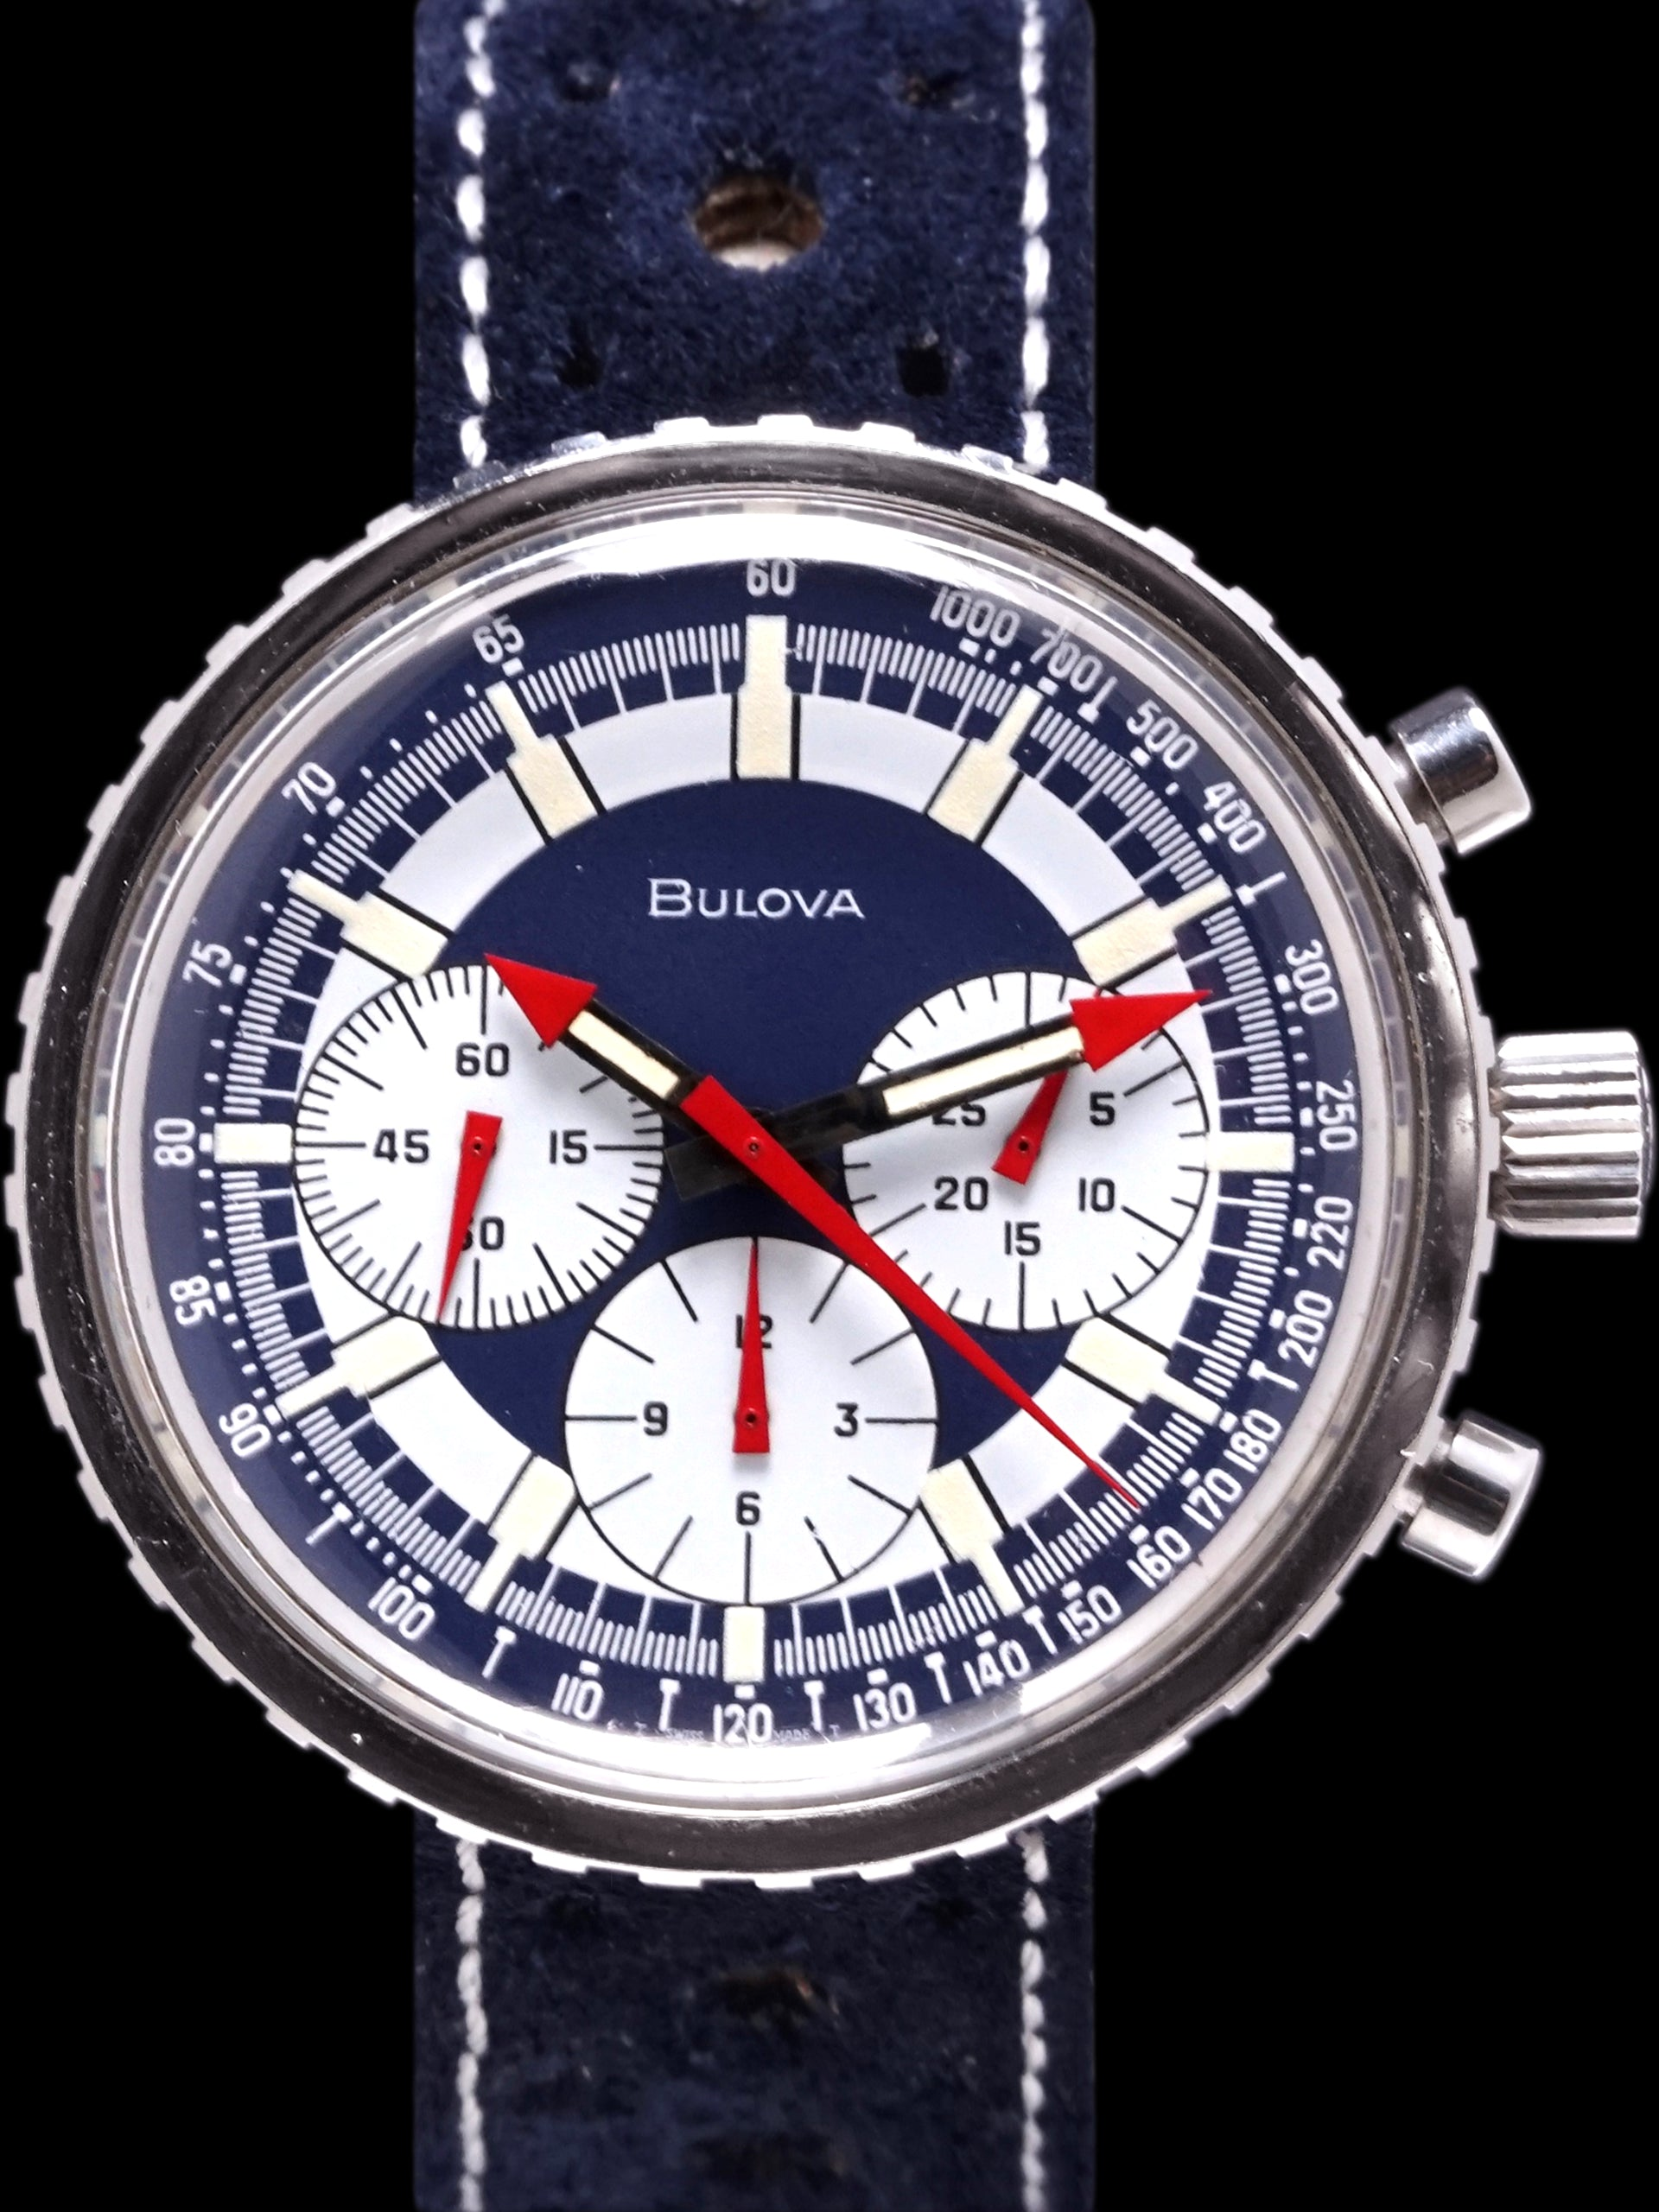 "*Unpolished* 1970 Bulova Chronograph C ""Stars & Stripes"""